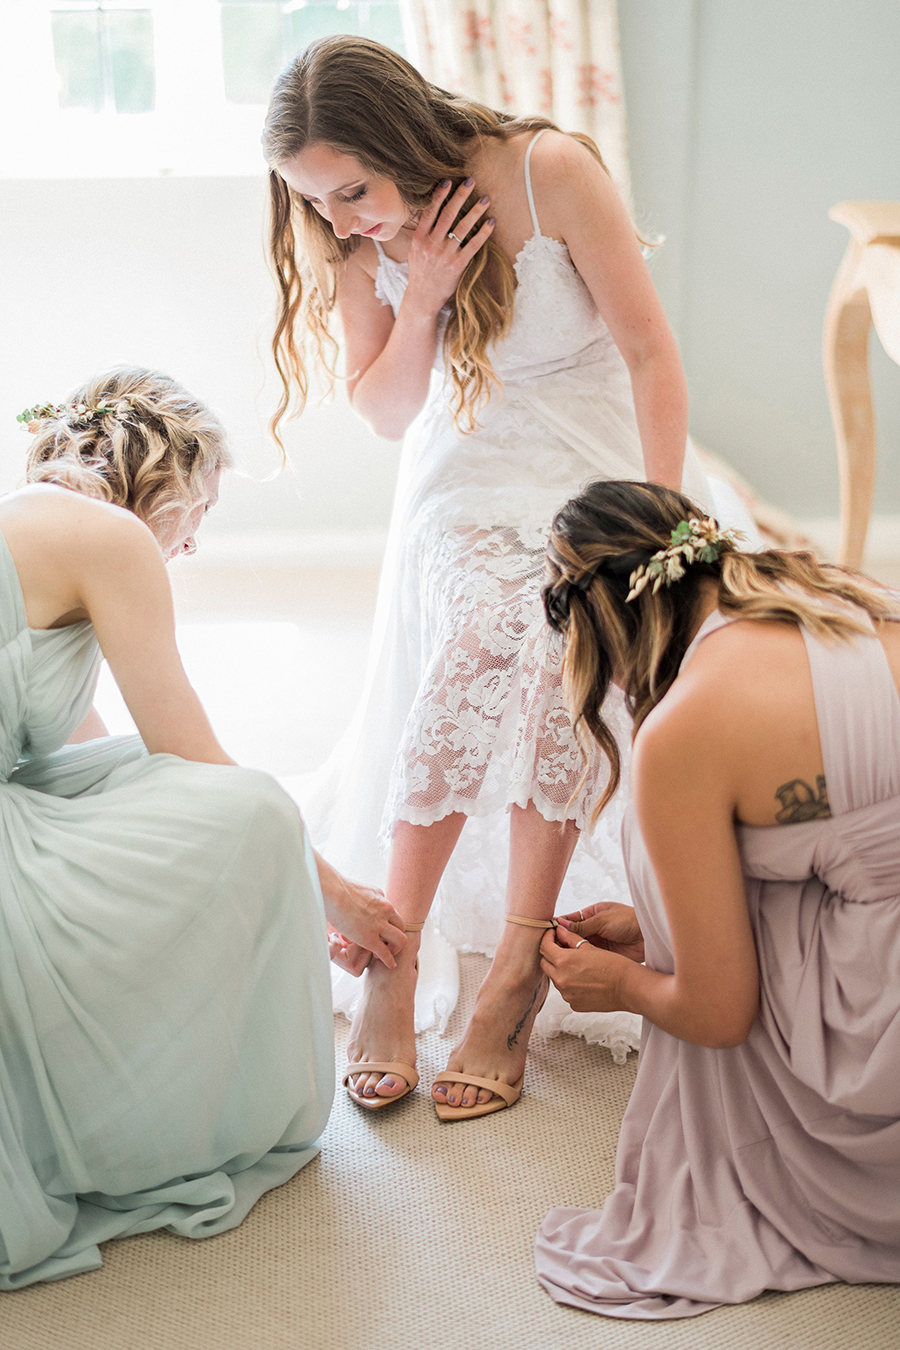 Dreamy boho wedding at Houchins Farm with images by Kathryn Hopkins Photography (3)